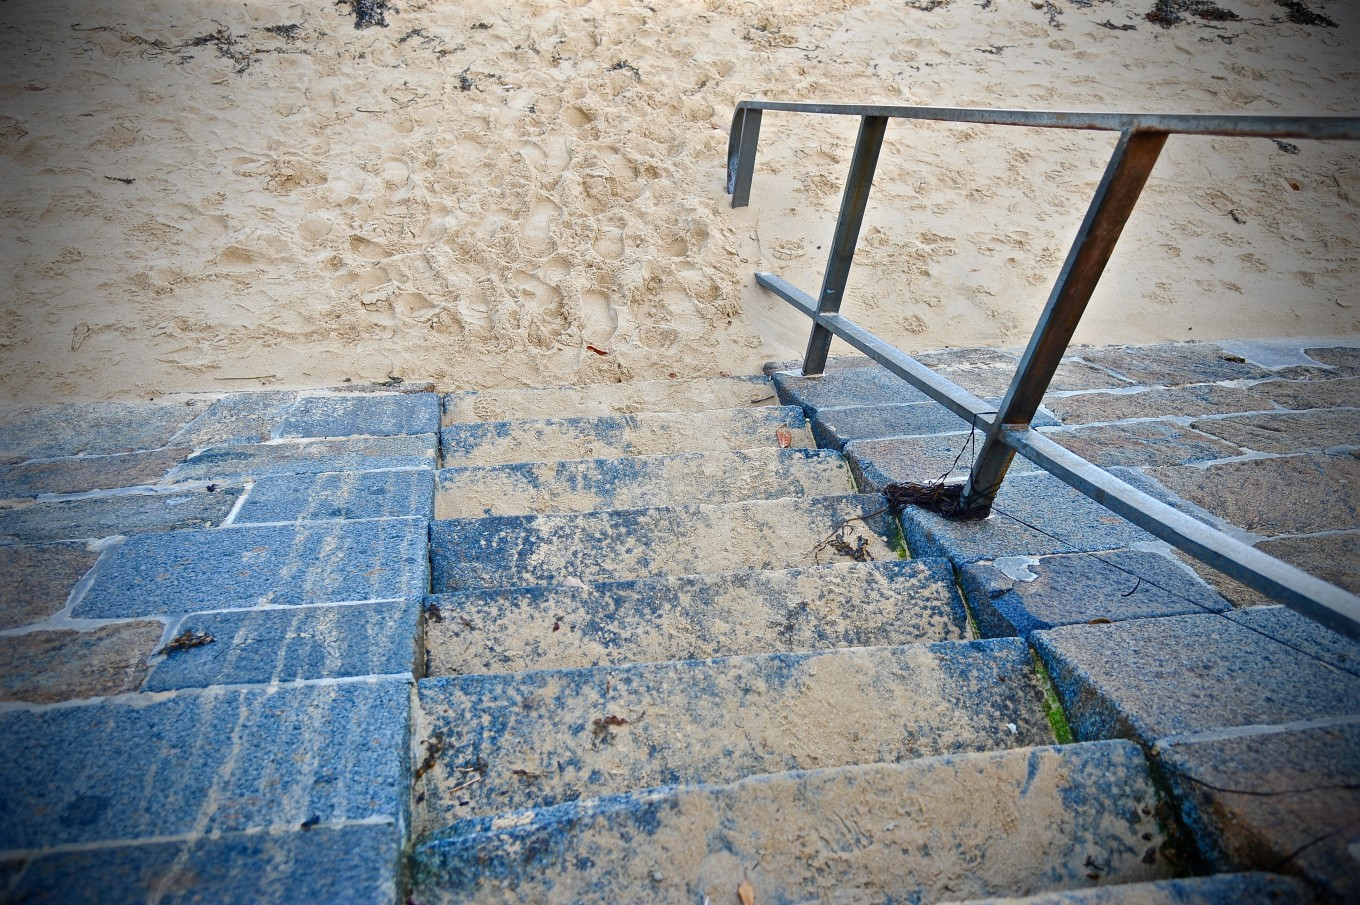 Escalier de plage, Digue de Rochebonne, Saint-Malo